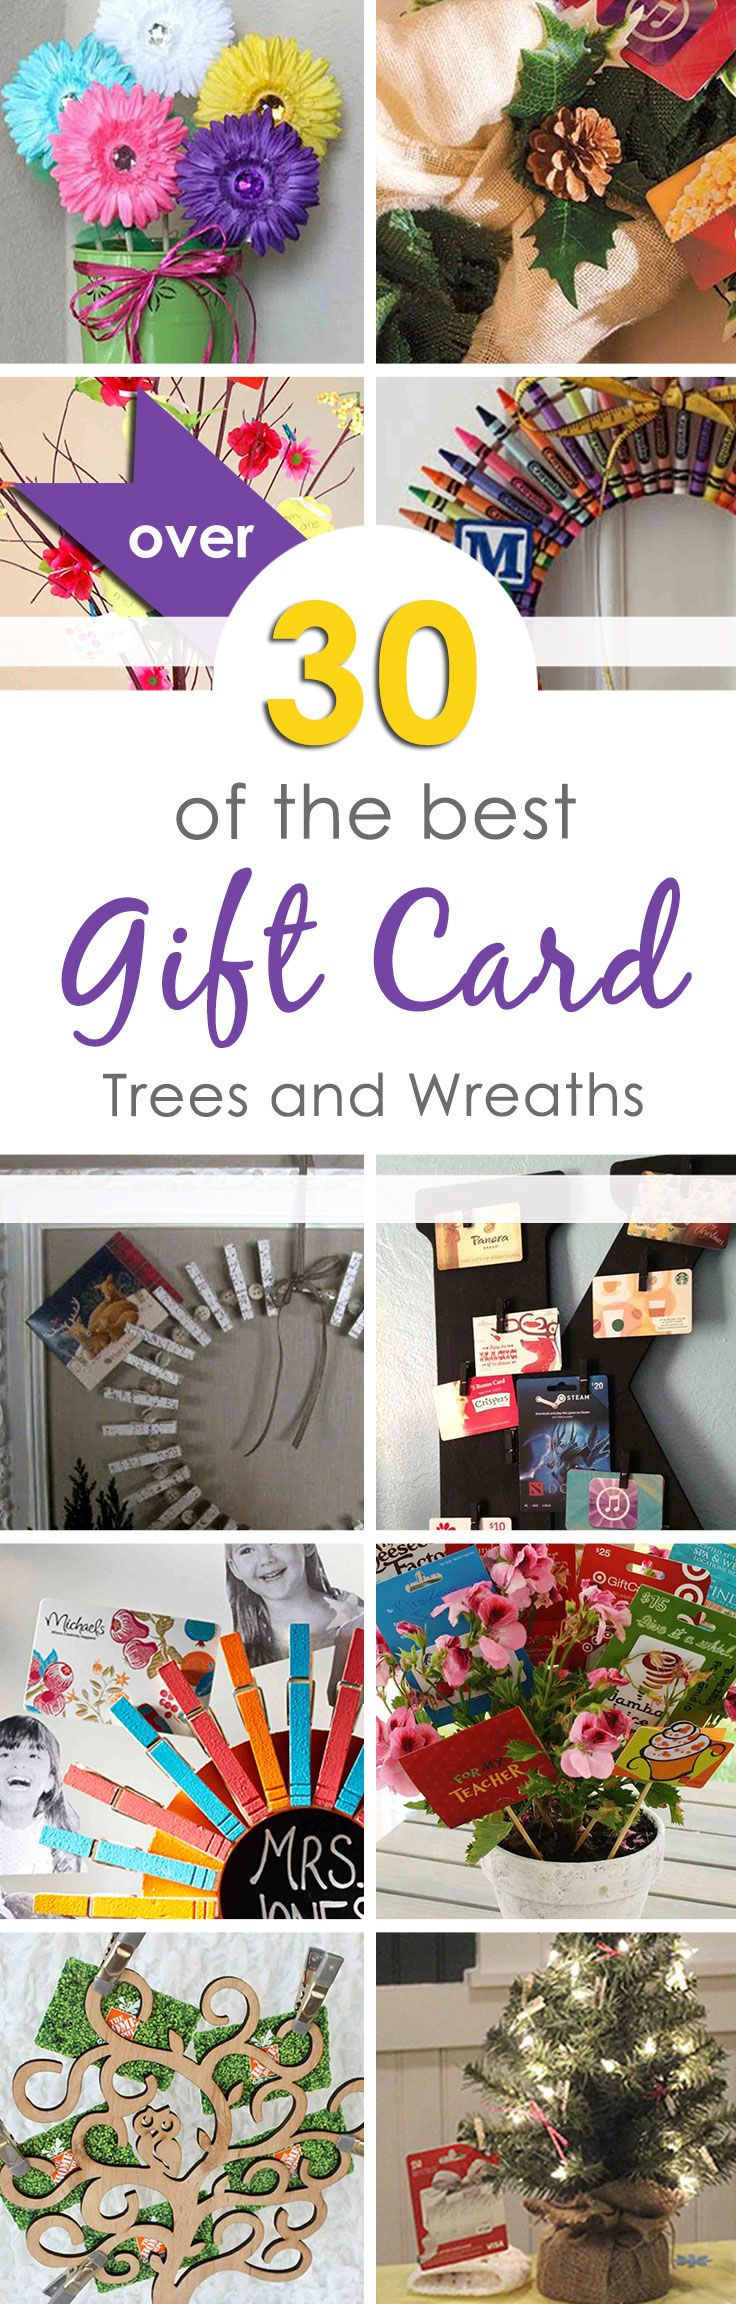 the best gift card tree and gift card wreaths ever teacher appreciation gift ideas pinterest gifts gift card tree and teacher gifts